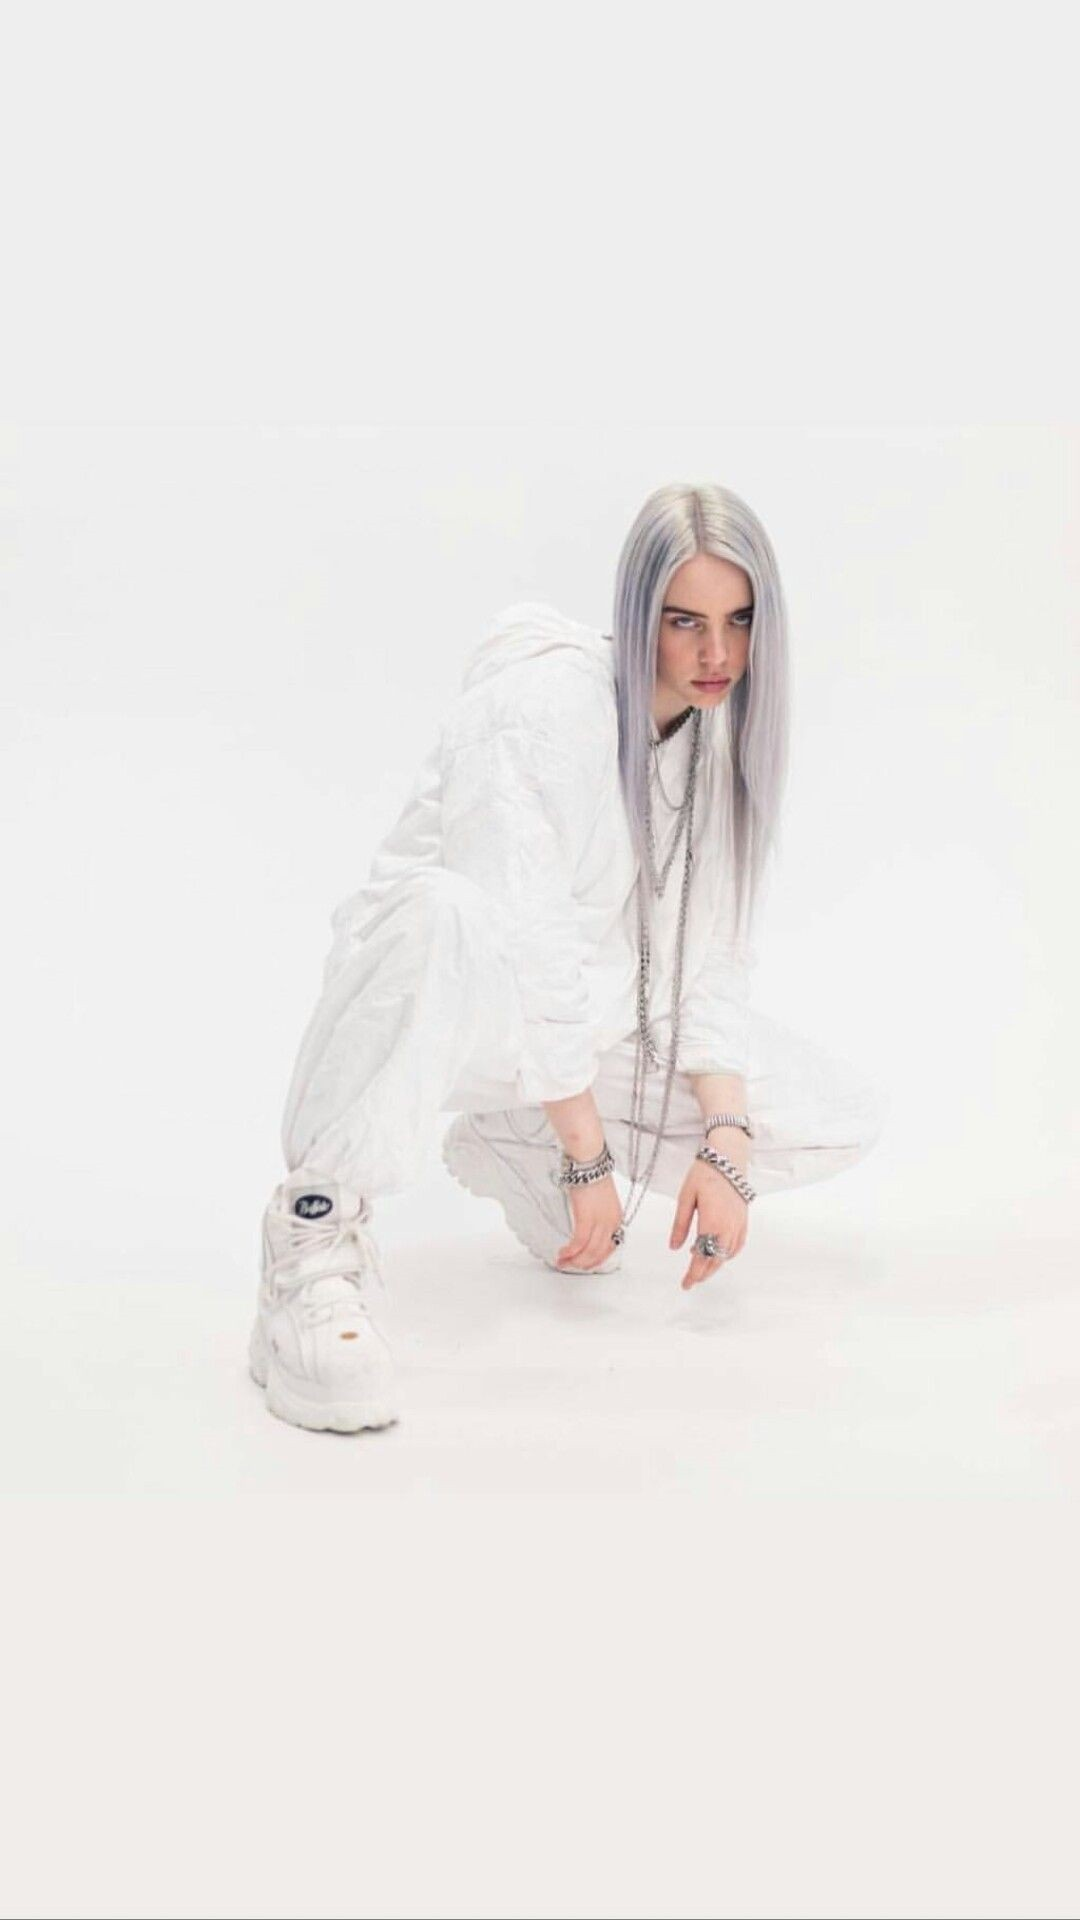 28 Billie Eilish Iphone Wallpapers Wallpaperboat